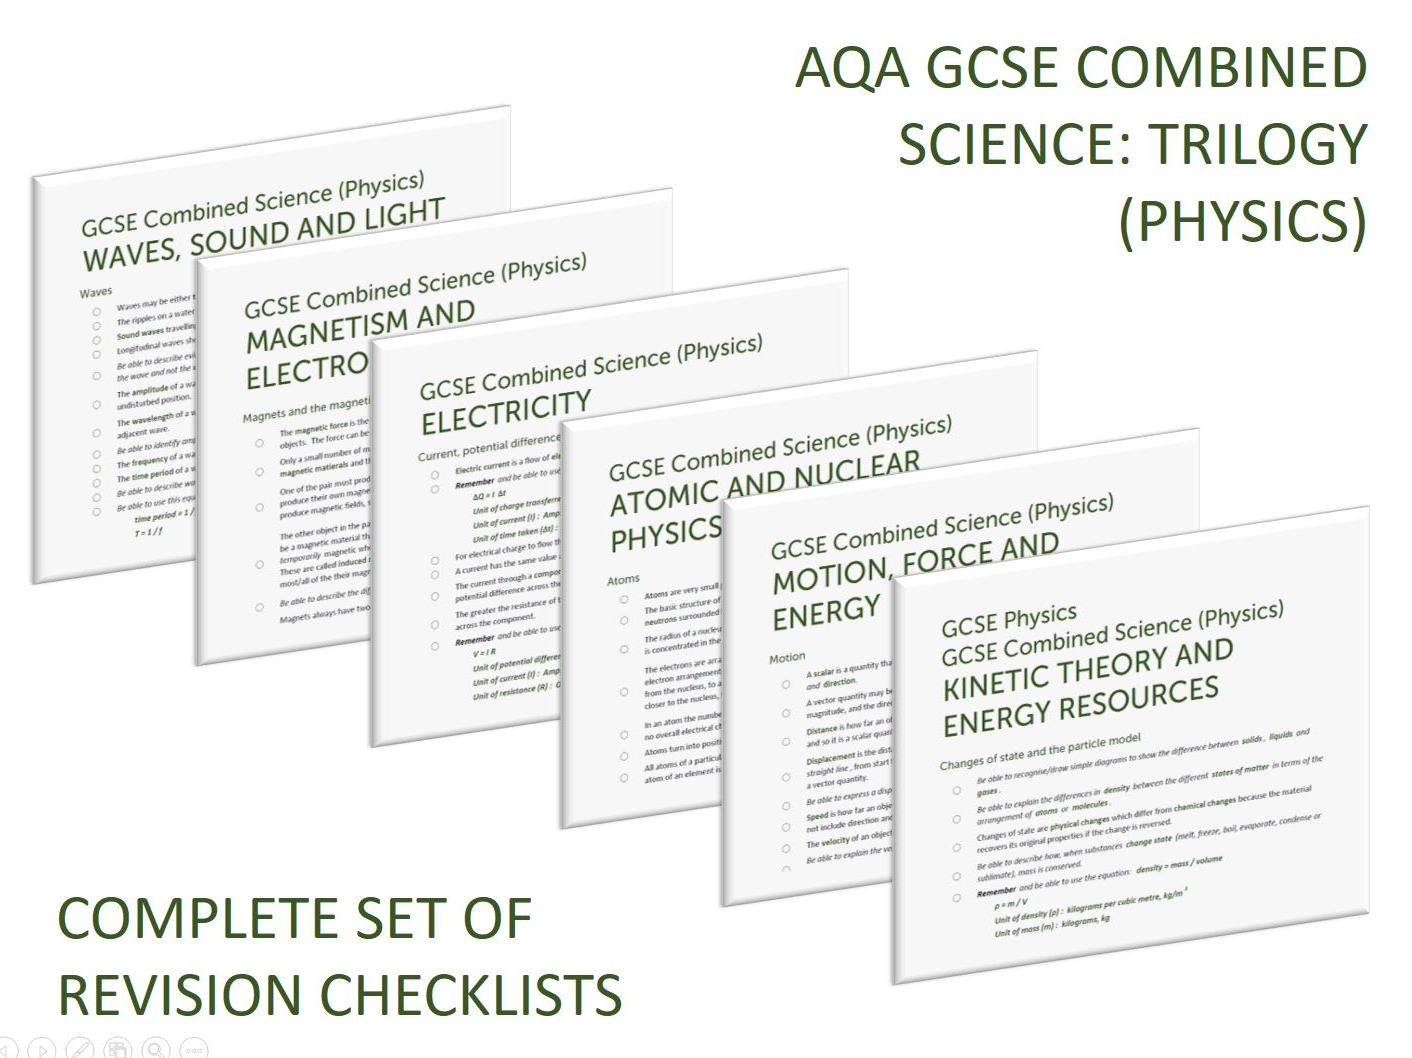 Complete set of Physics revision checklists for GCSE Combined Science (Trilogy)